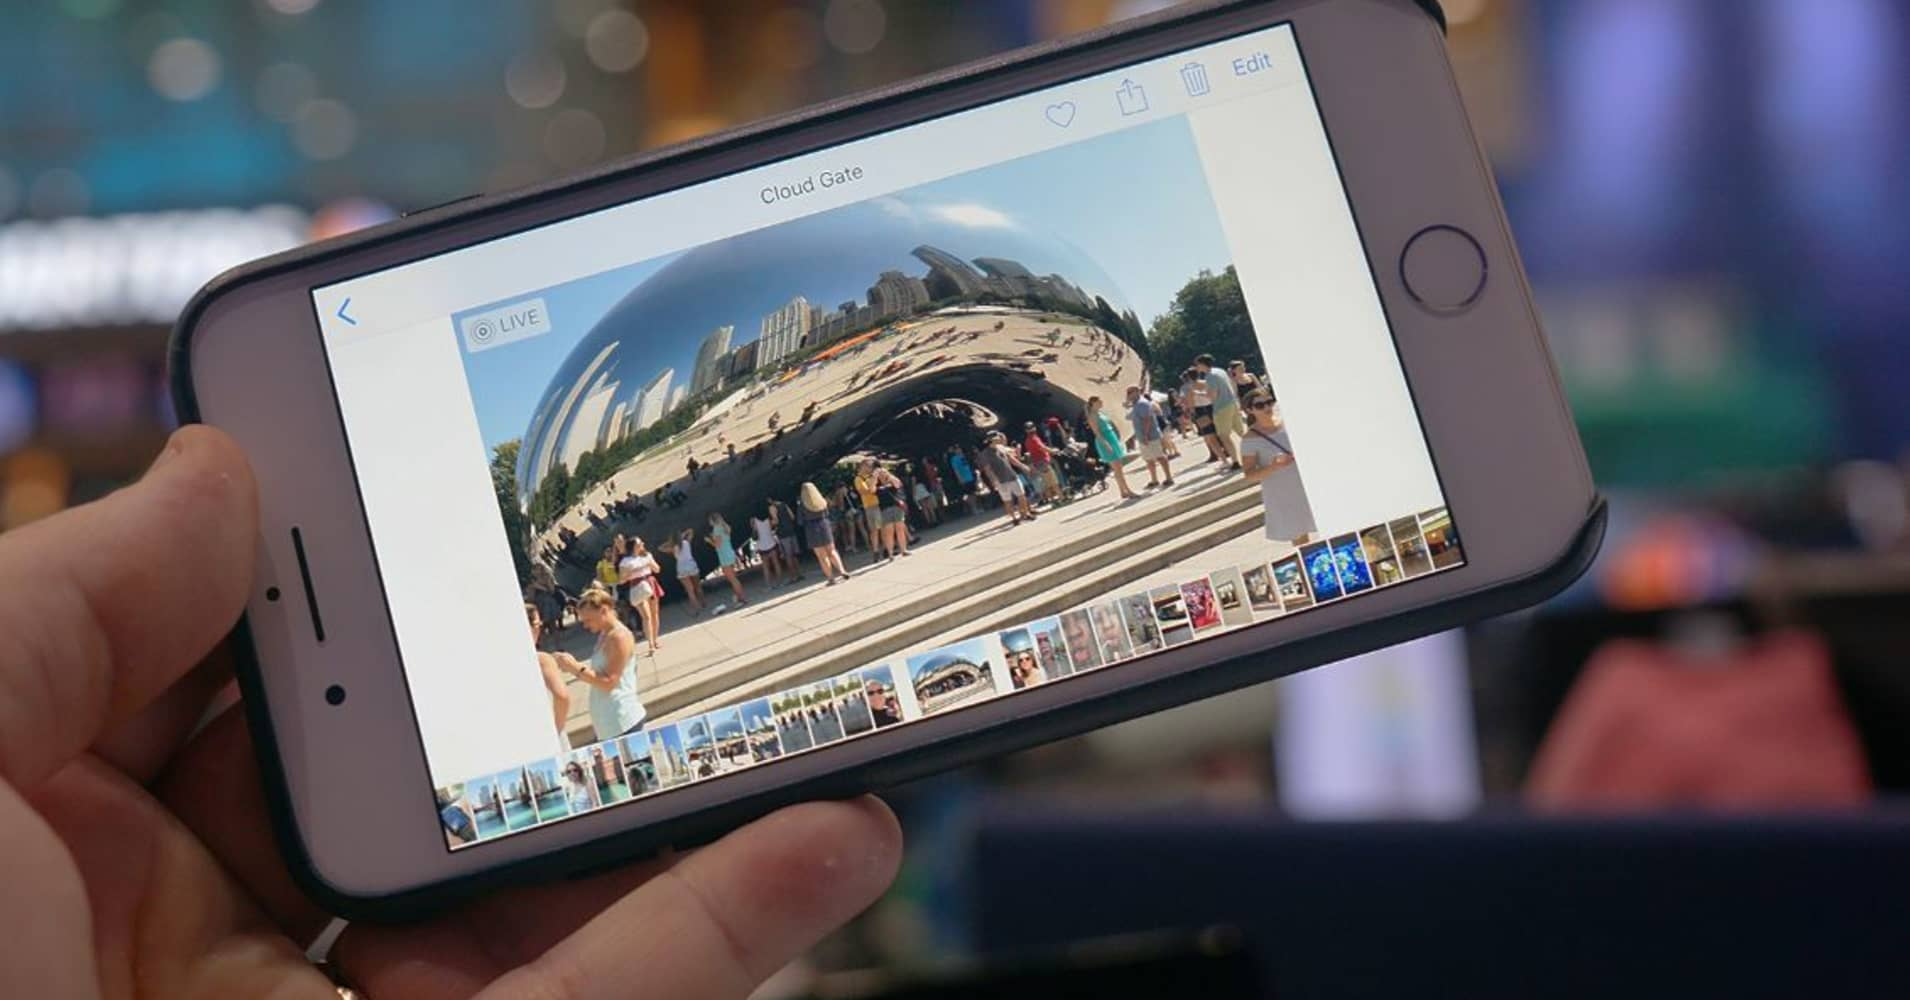 Use the new camera features in iOS 11